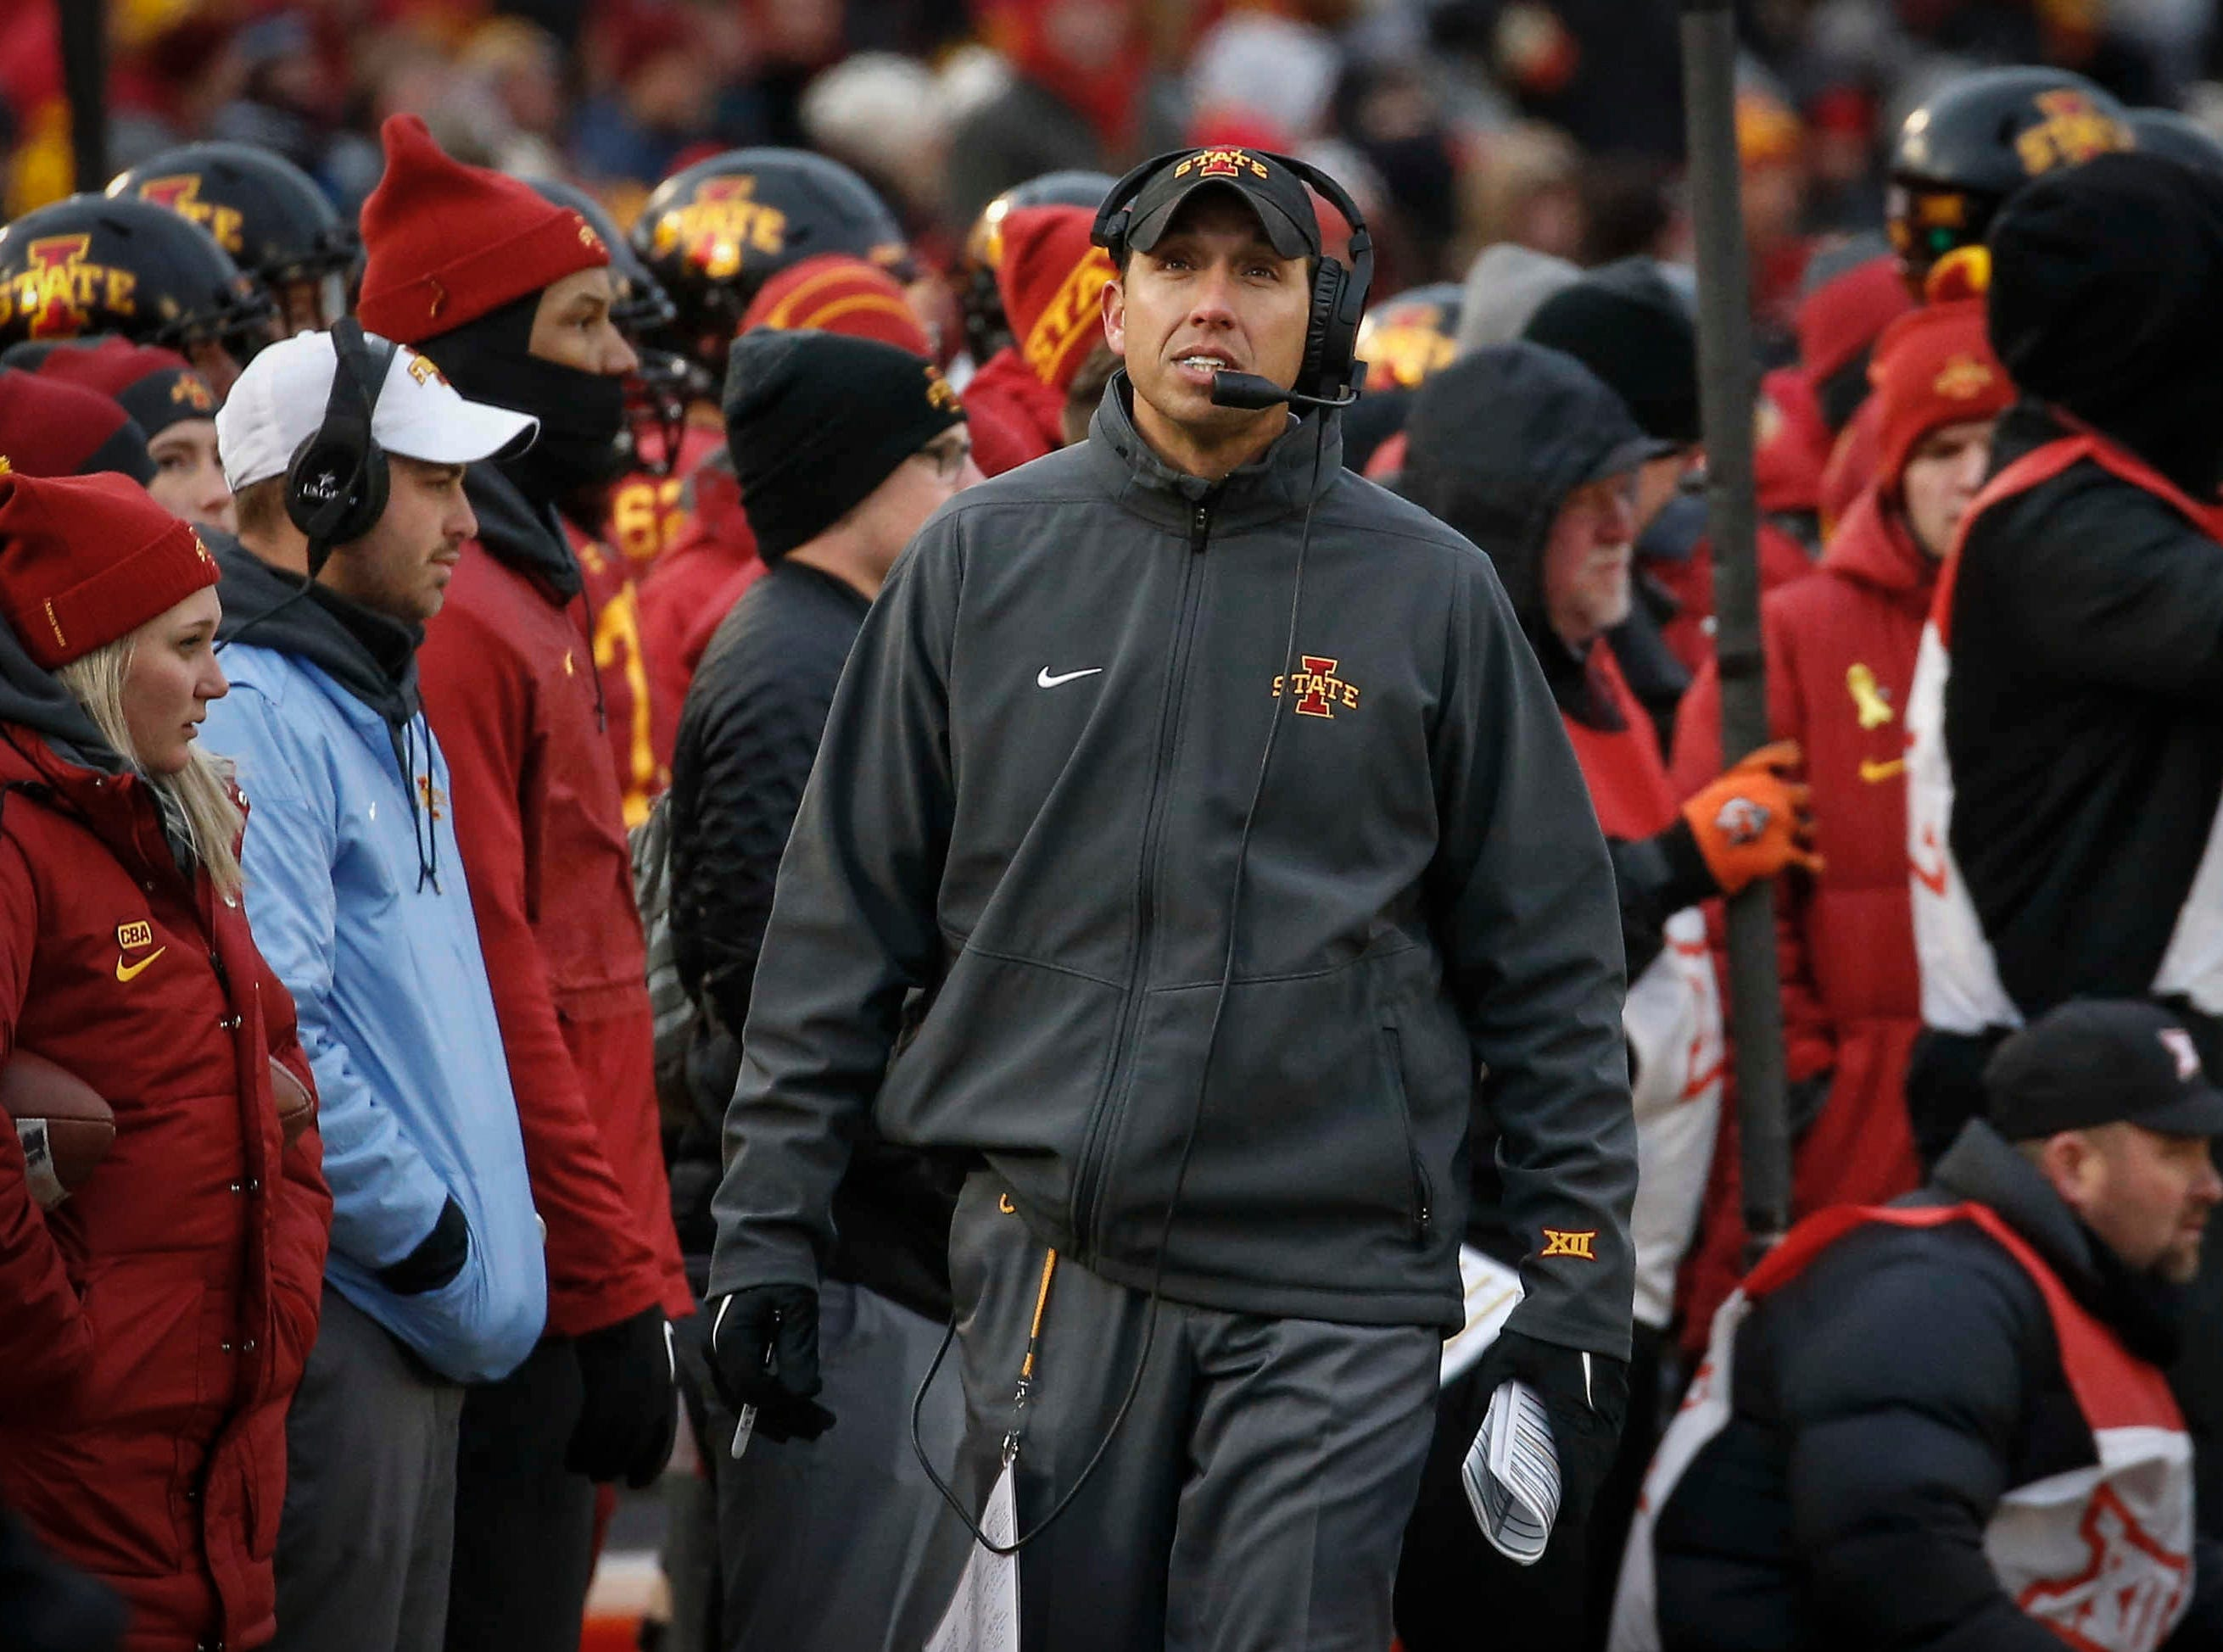 Iowa State head football coach Matt Campbell looks over at the replay screen in the second quarter against Baylor at Jack Trice Stadium in Ames on Saturday, Nov. 10, 2018.